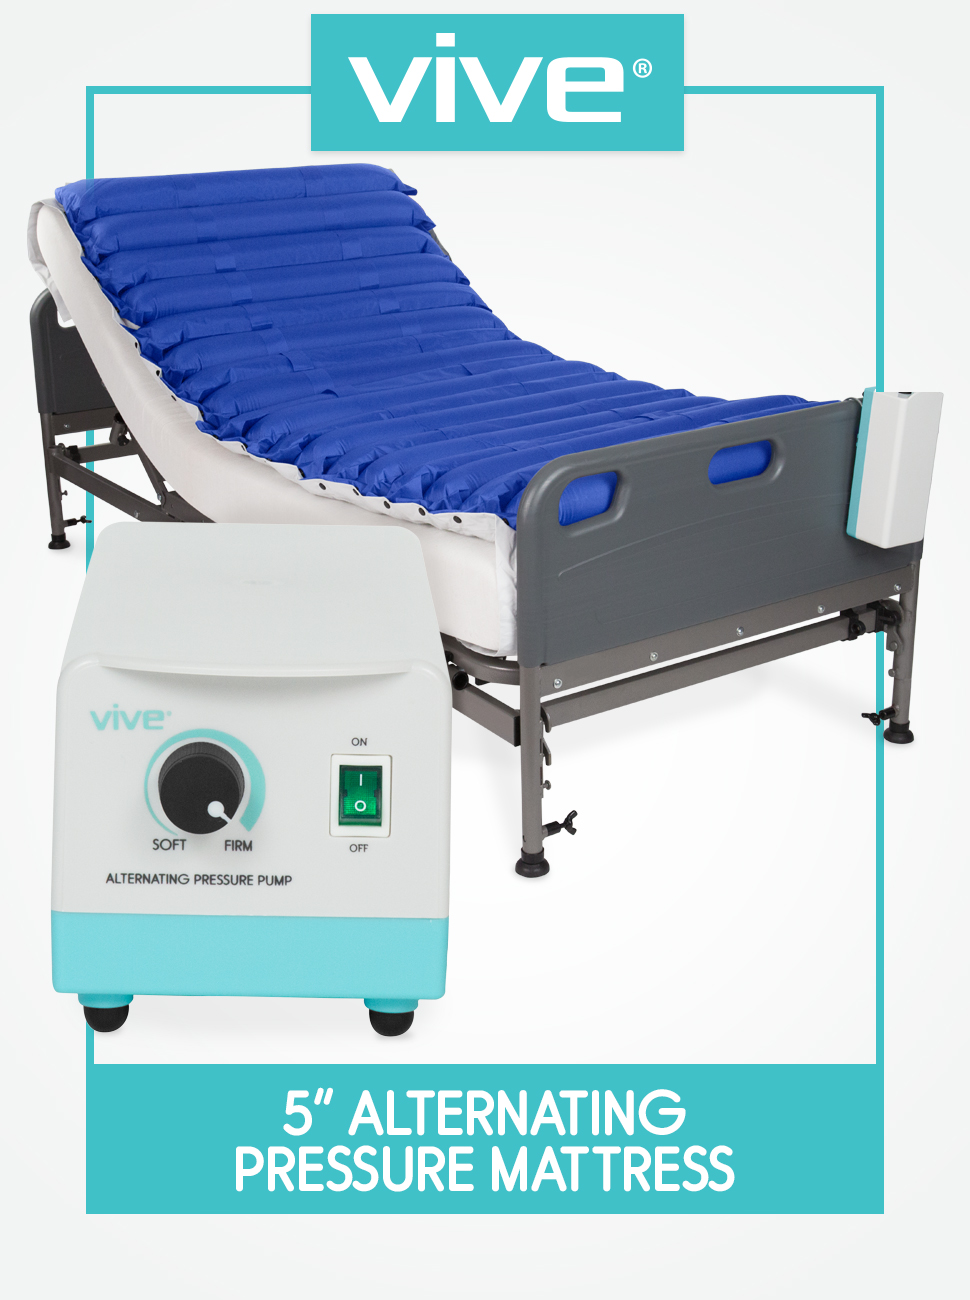 Alternating Pressure Mattress 5